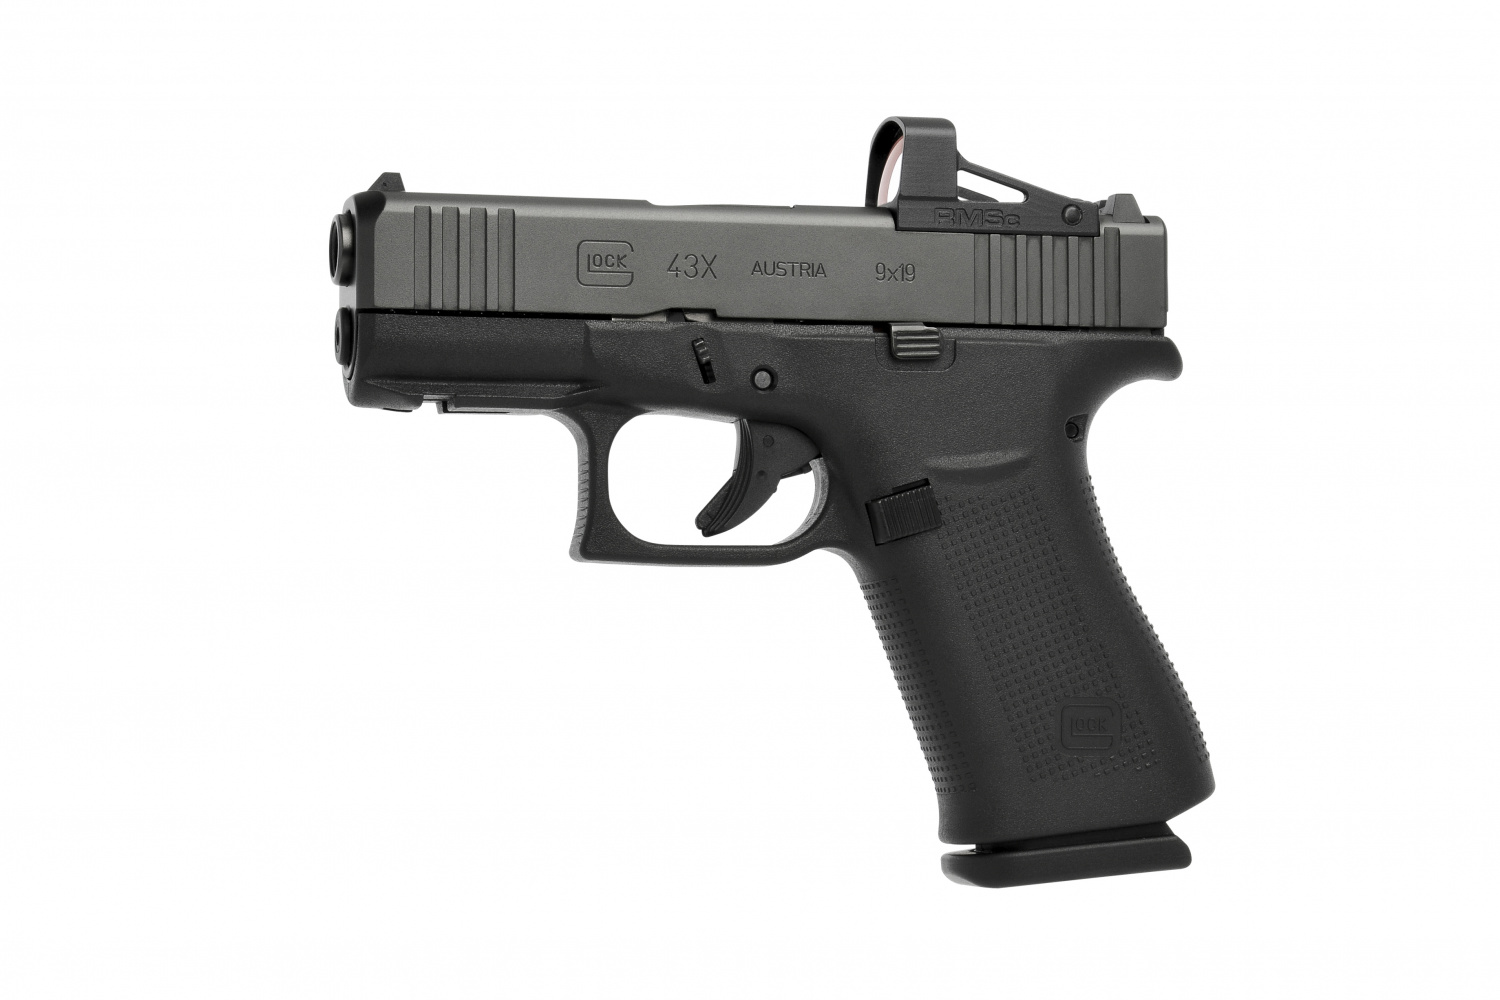 The Glock edition RMSc was purpose-built for the G43 and G48 MOS pistols, but will also fit others that use the same footprint.